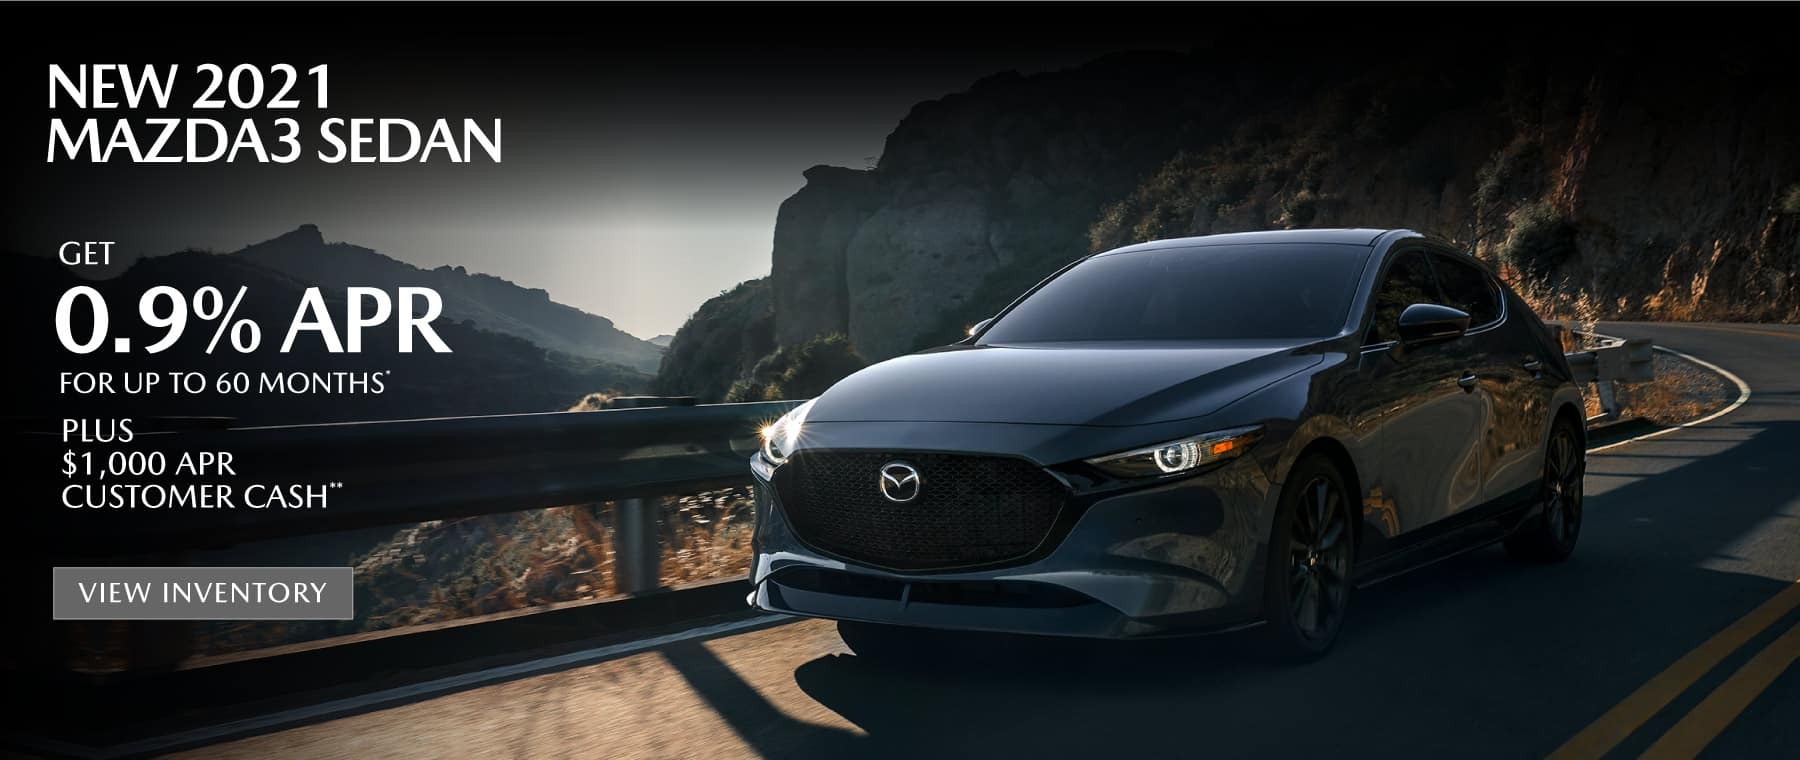 New 2021 MAZDA3 – Get 0.9% APR for up to 60 months plus $1000 APR Customer Cash.*